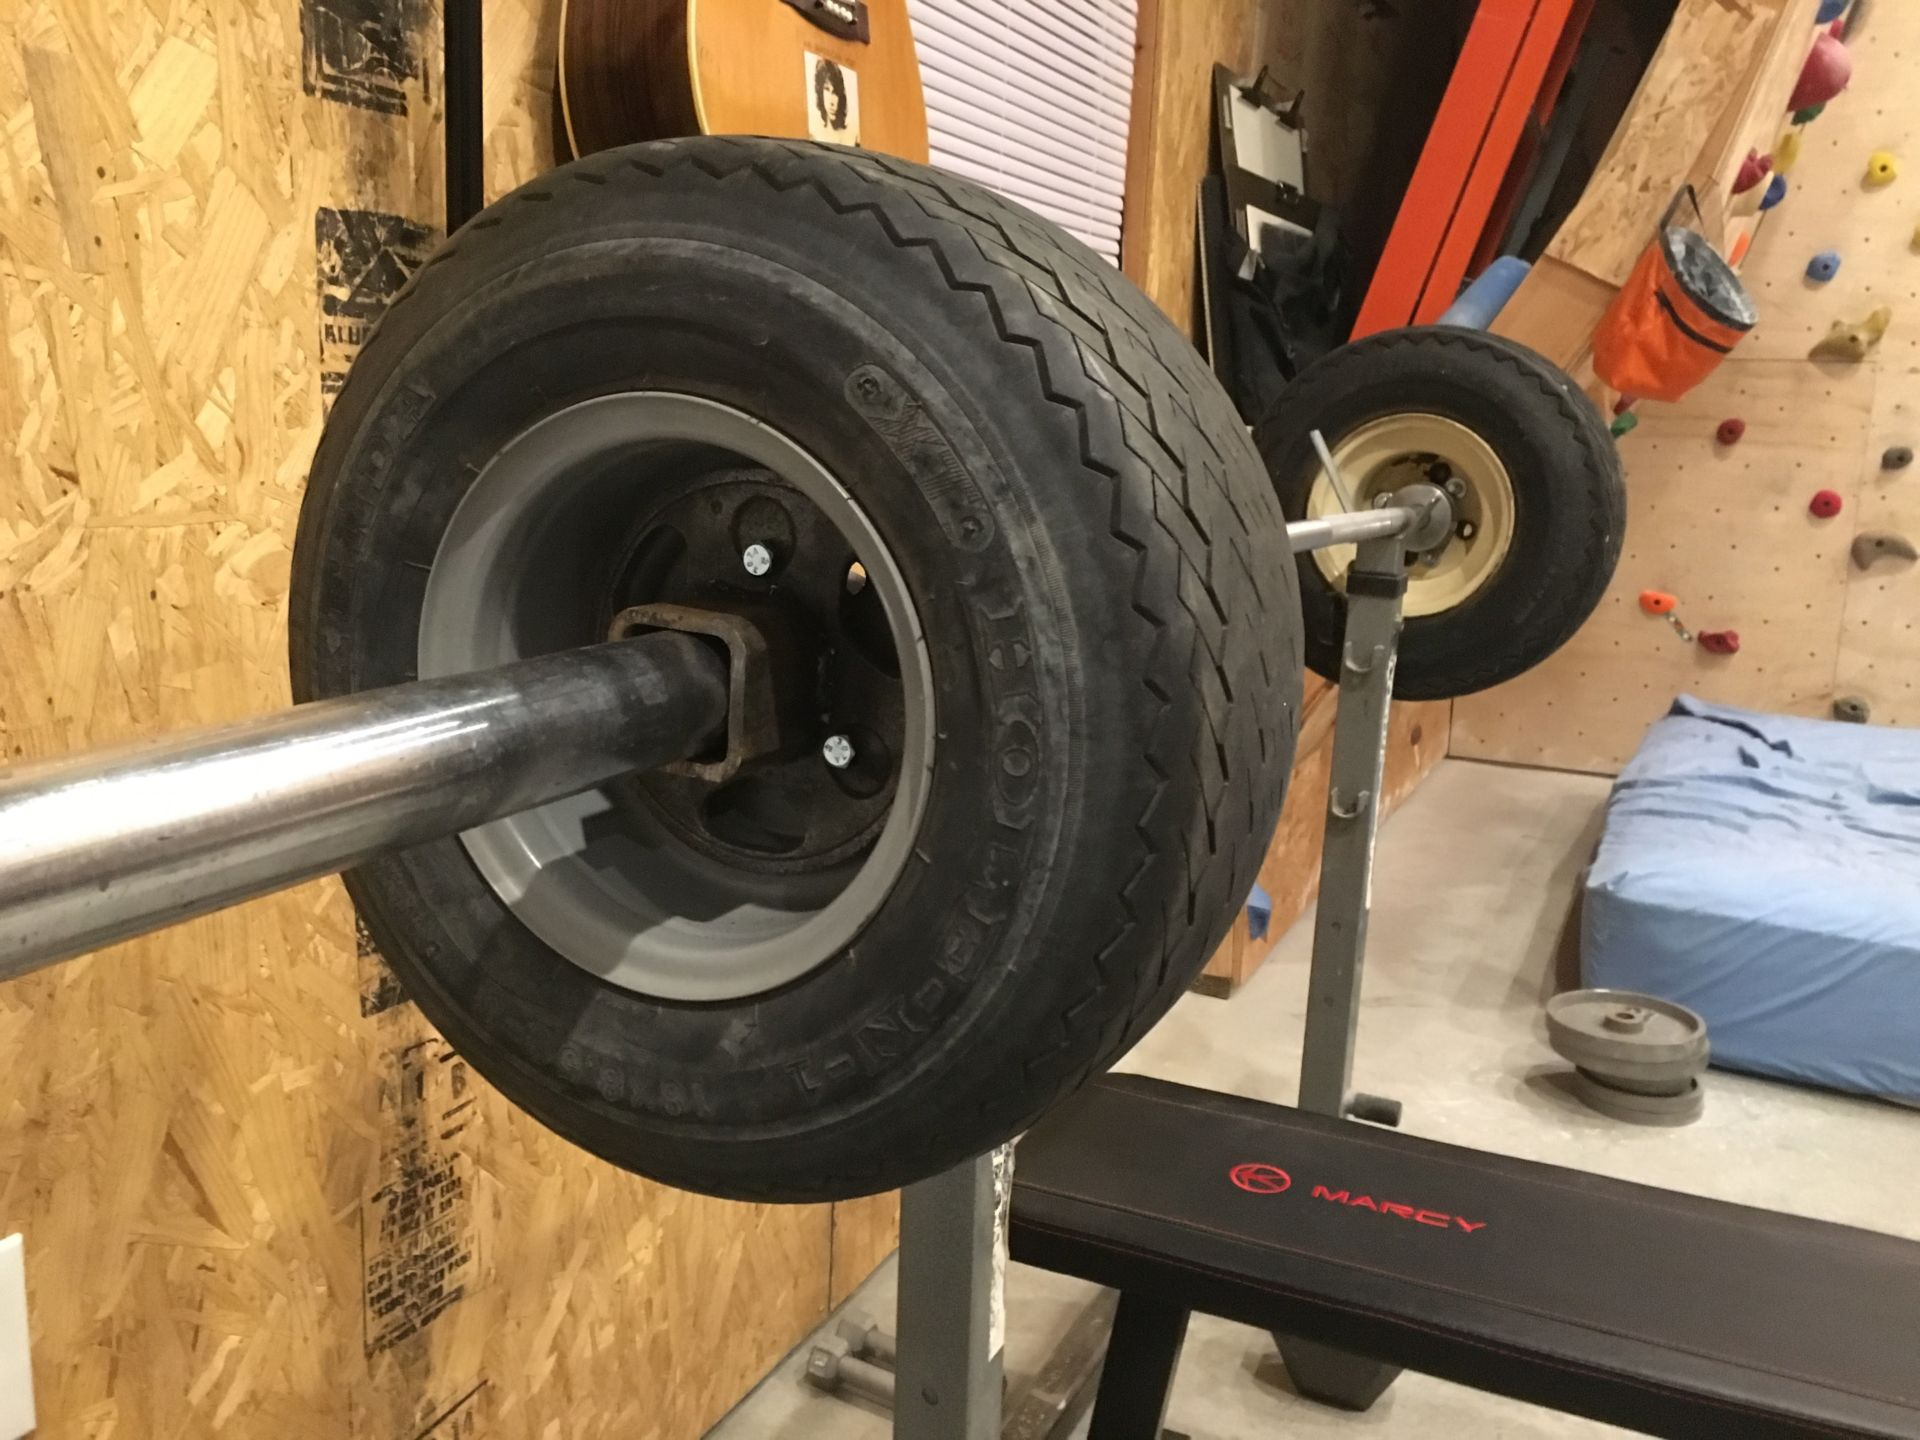 DIY Gym Equipment from Car Parts